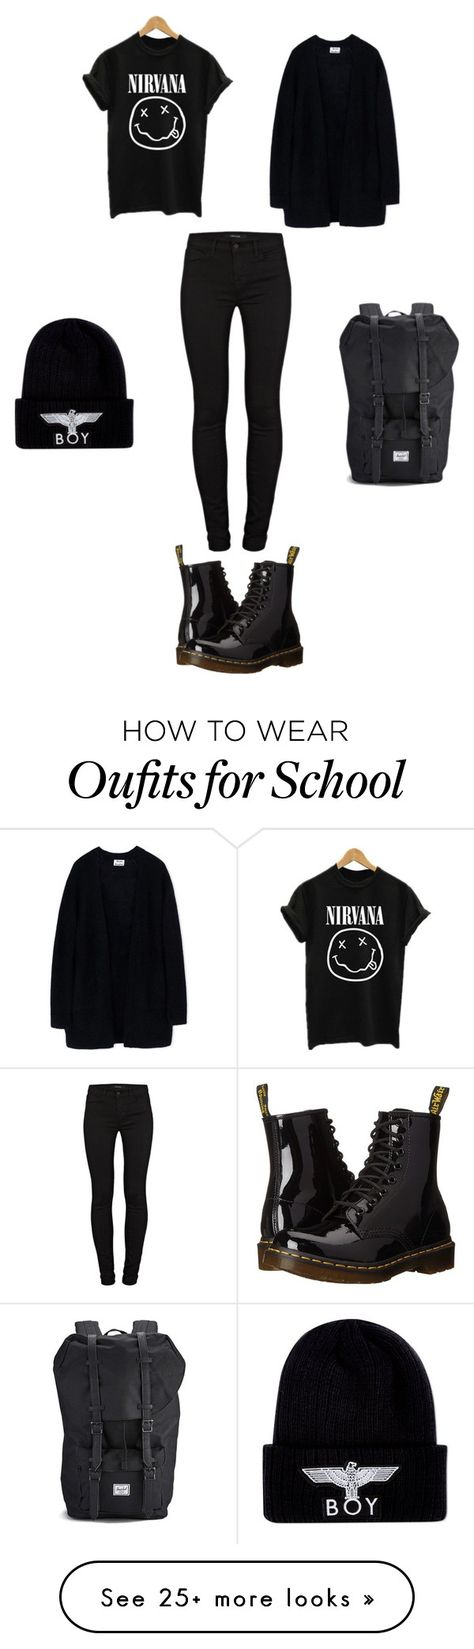 """""""I Can't Wait For School And Fall """" by zasad on Polyvore featuring Acne Studios, Dr. Martens, J Brand, Herschel and BOY London"""